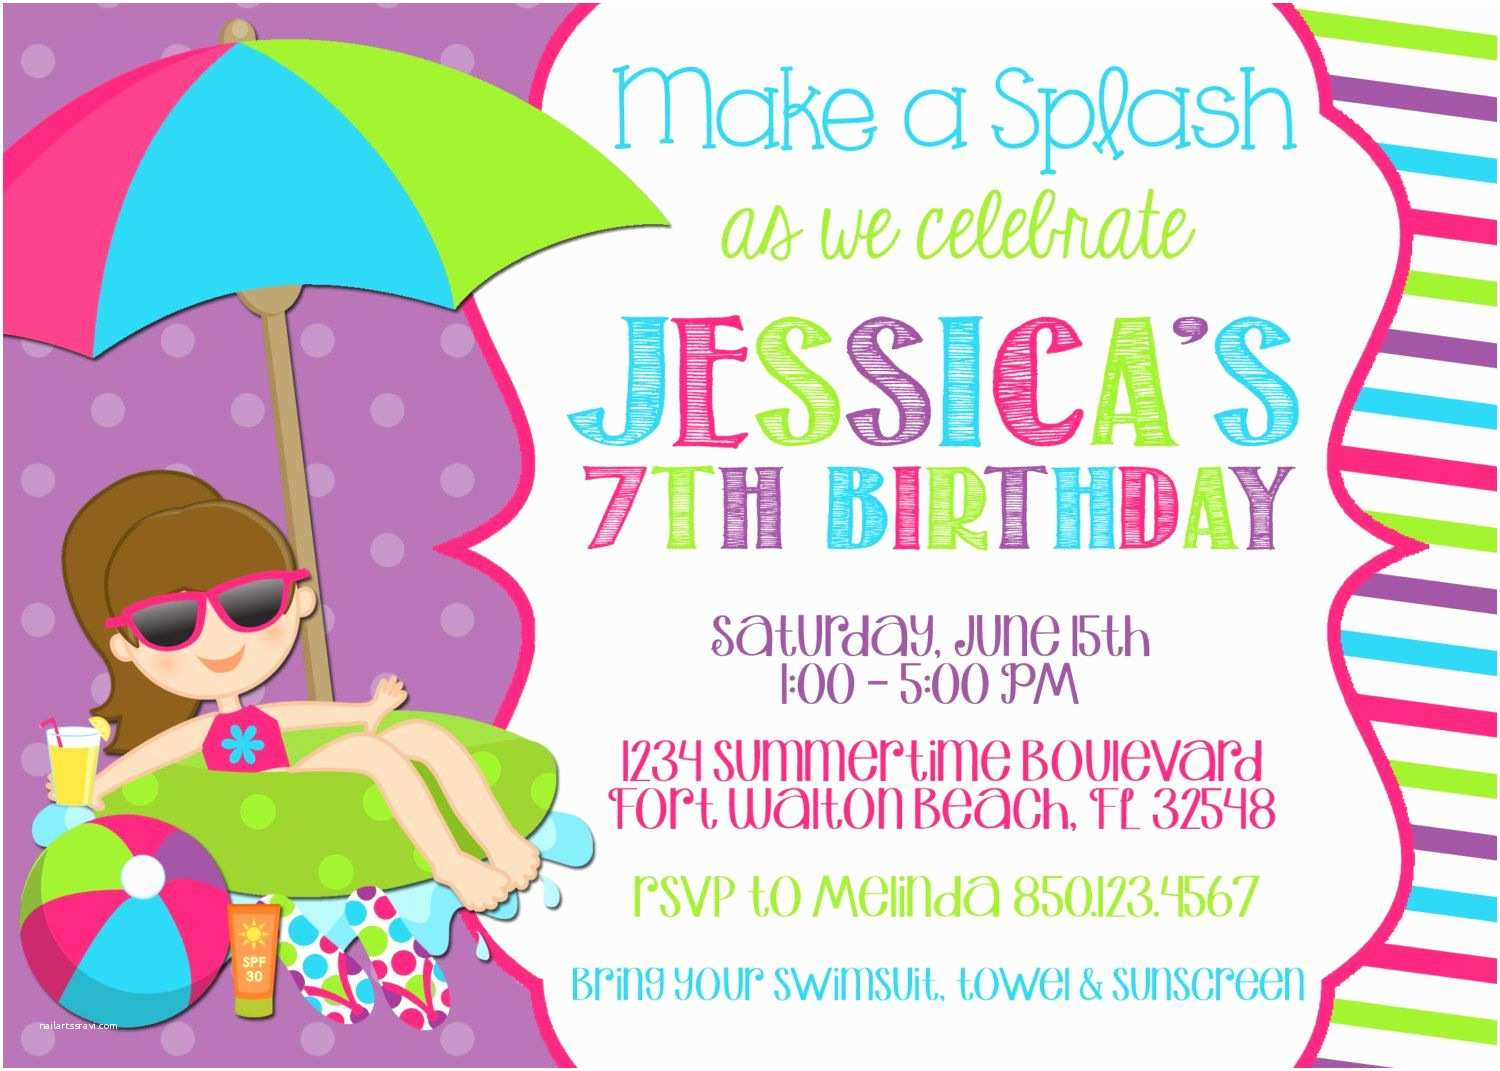 Party Invitation Sample Pool Party Invitation Wording Template Markit2d